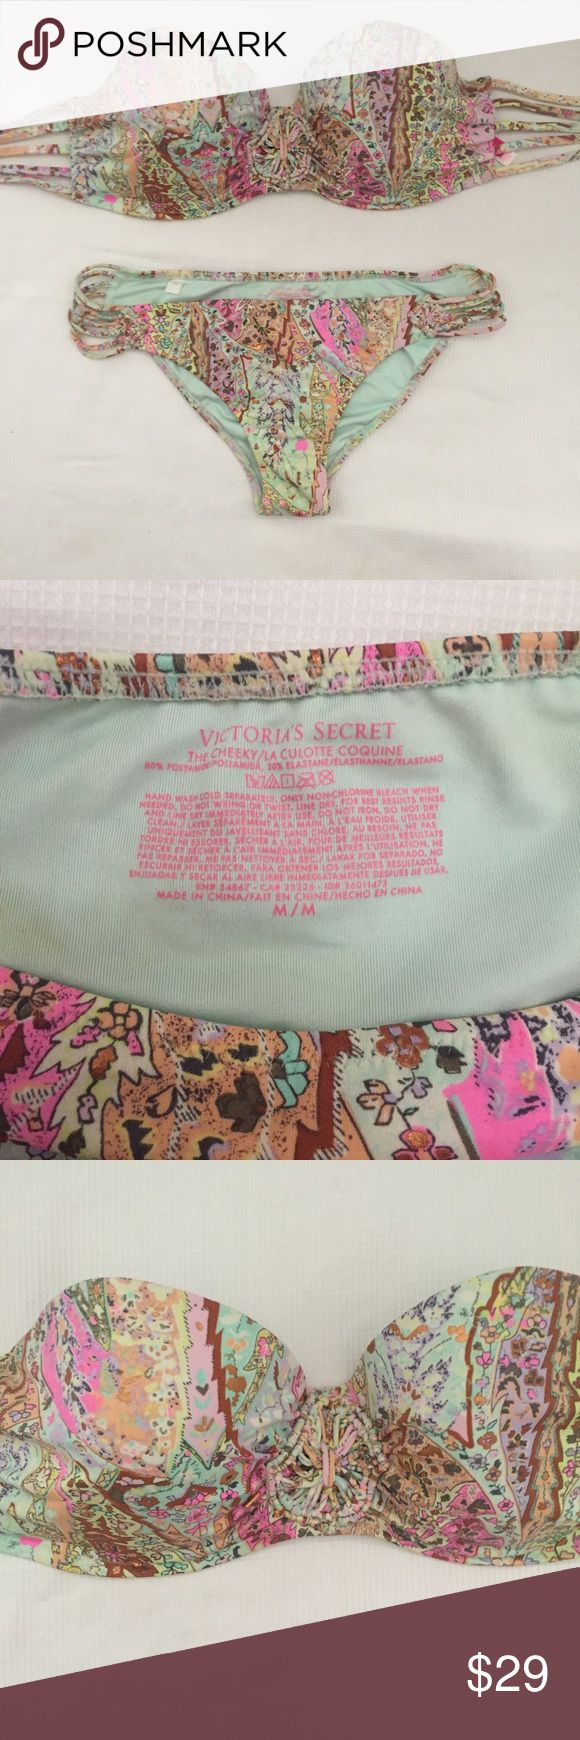 VICTORIAS SECRET bandeau bikini set 34DD and M Gently worn (probably 4-5 times)- still in great condition! Size 34DD top and M cheeky bottoms - true to size. Straps come with and can be attached to top easily! Victoria's Secret Swim Bikinis